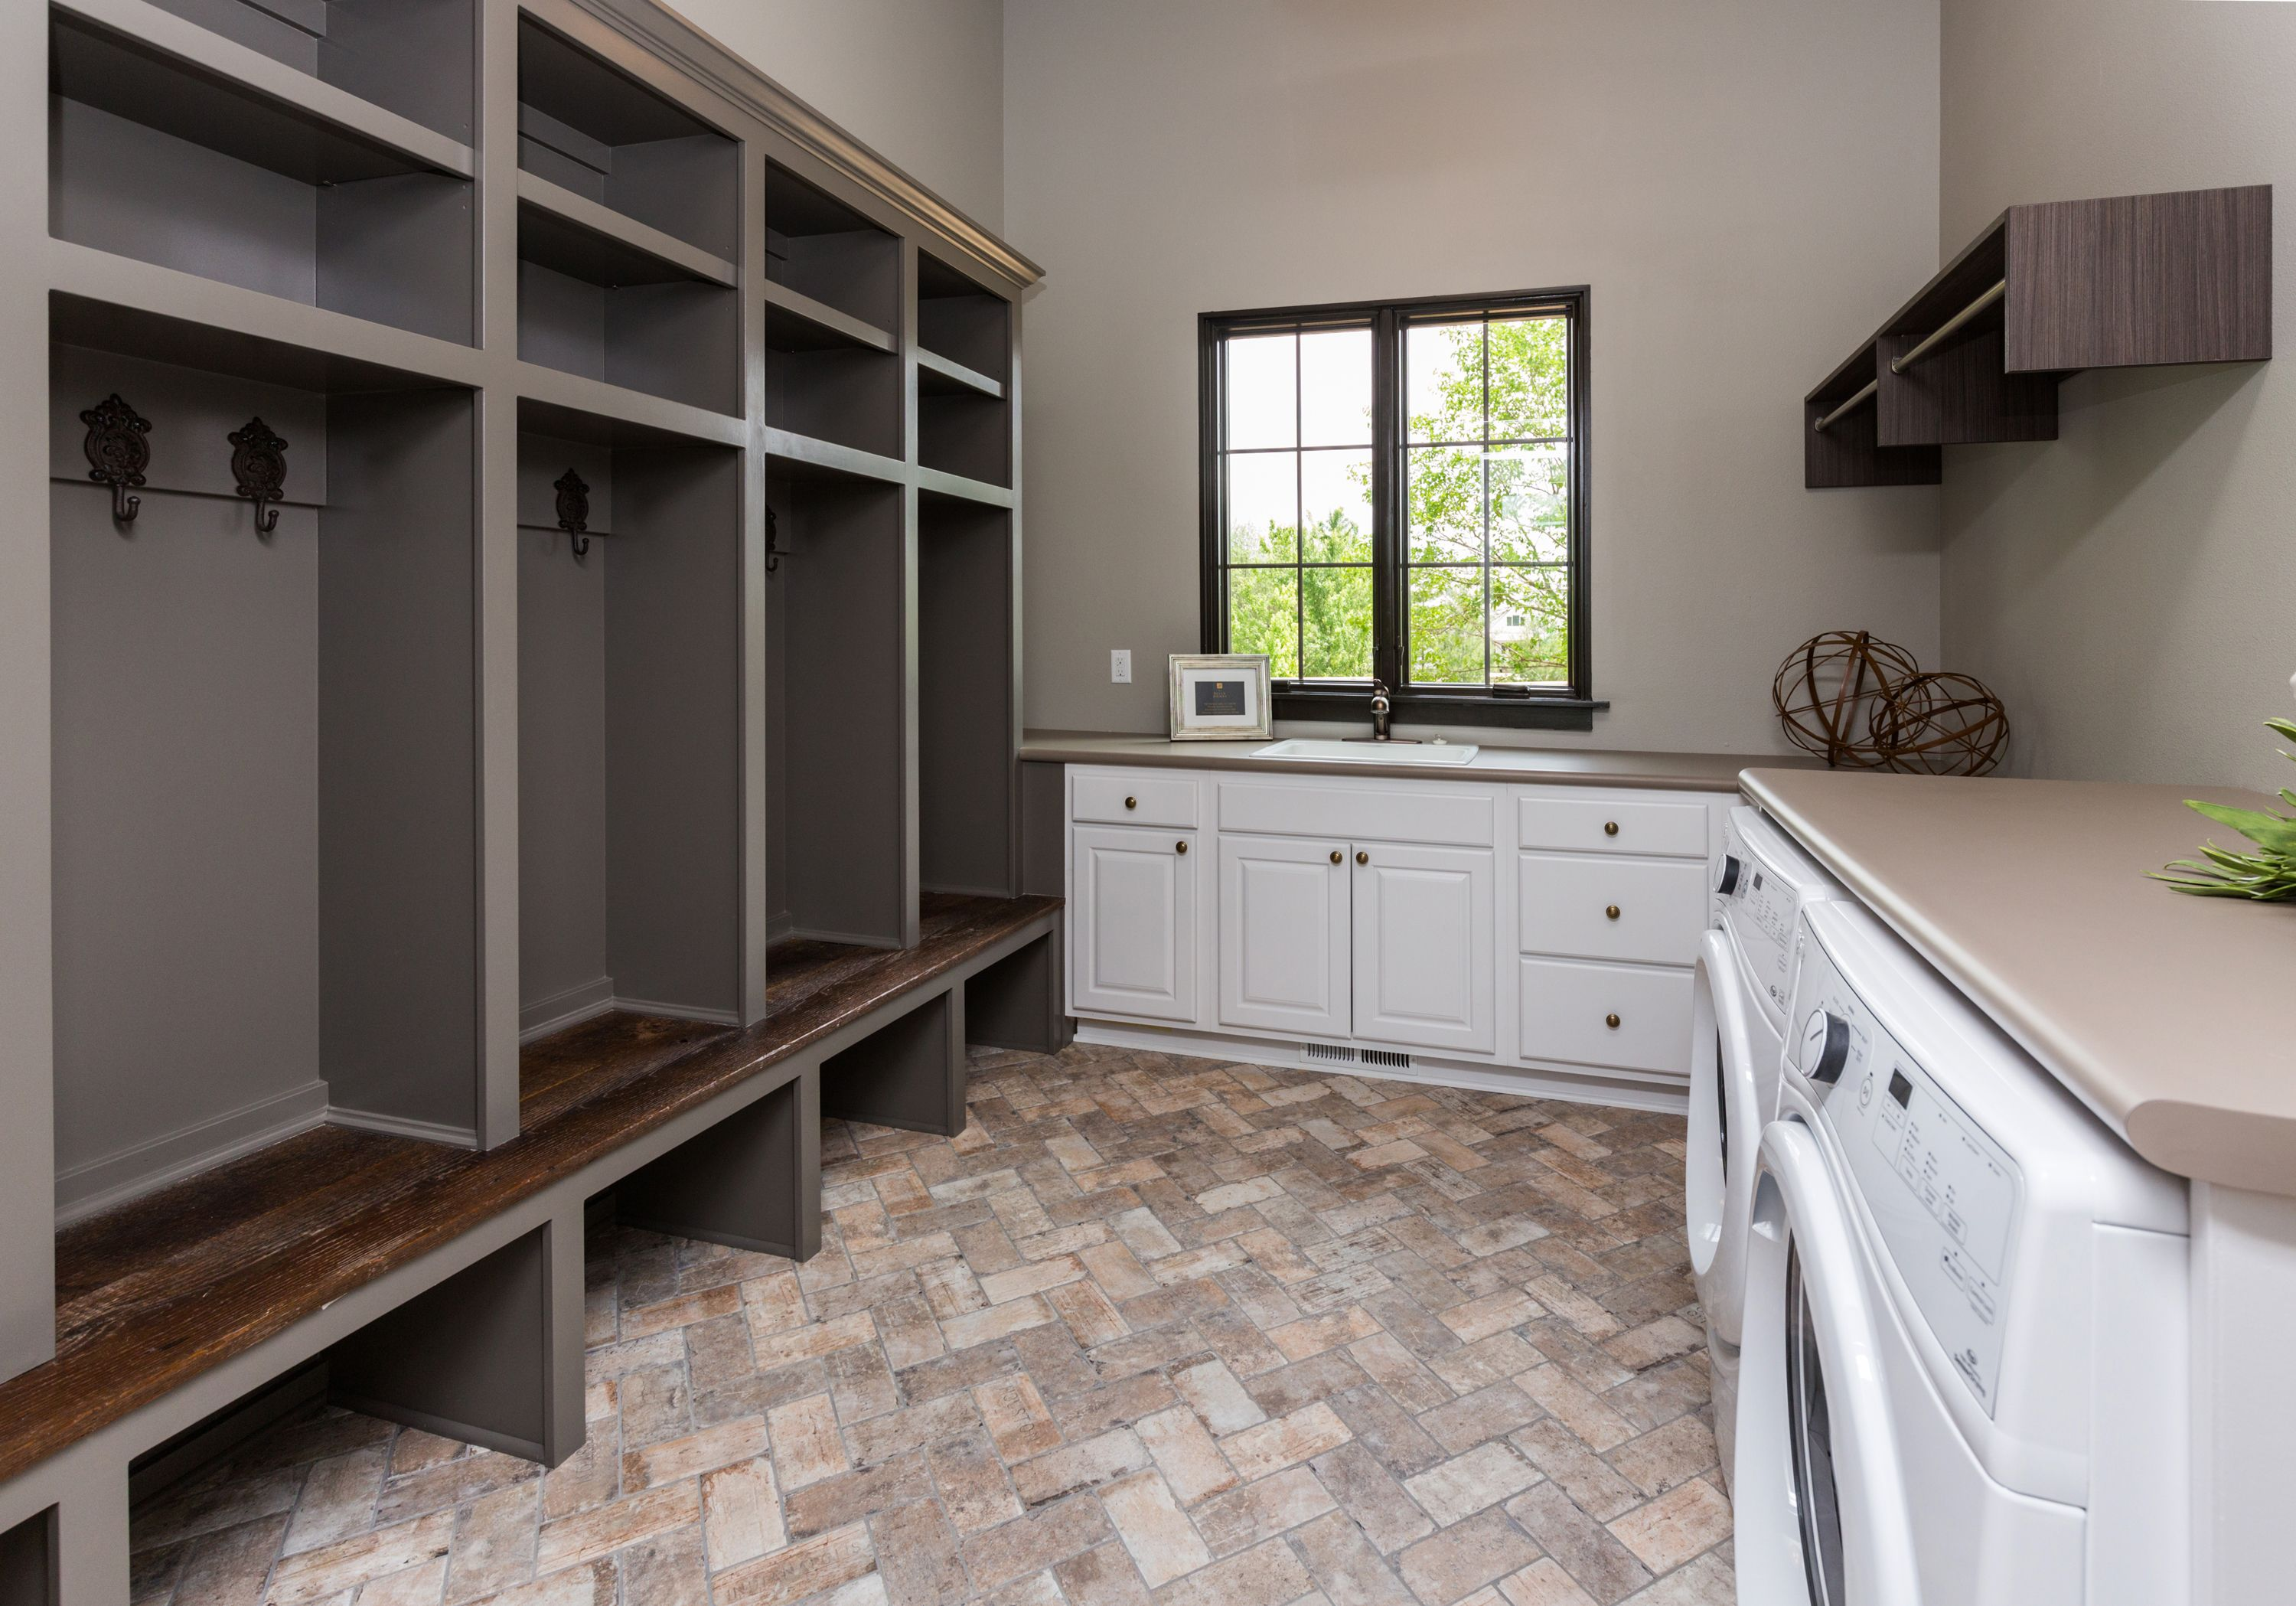 Barn Board Kitchen Cabinets Chicago Brick Tile From Sunderlands Sherwin Gauntlet